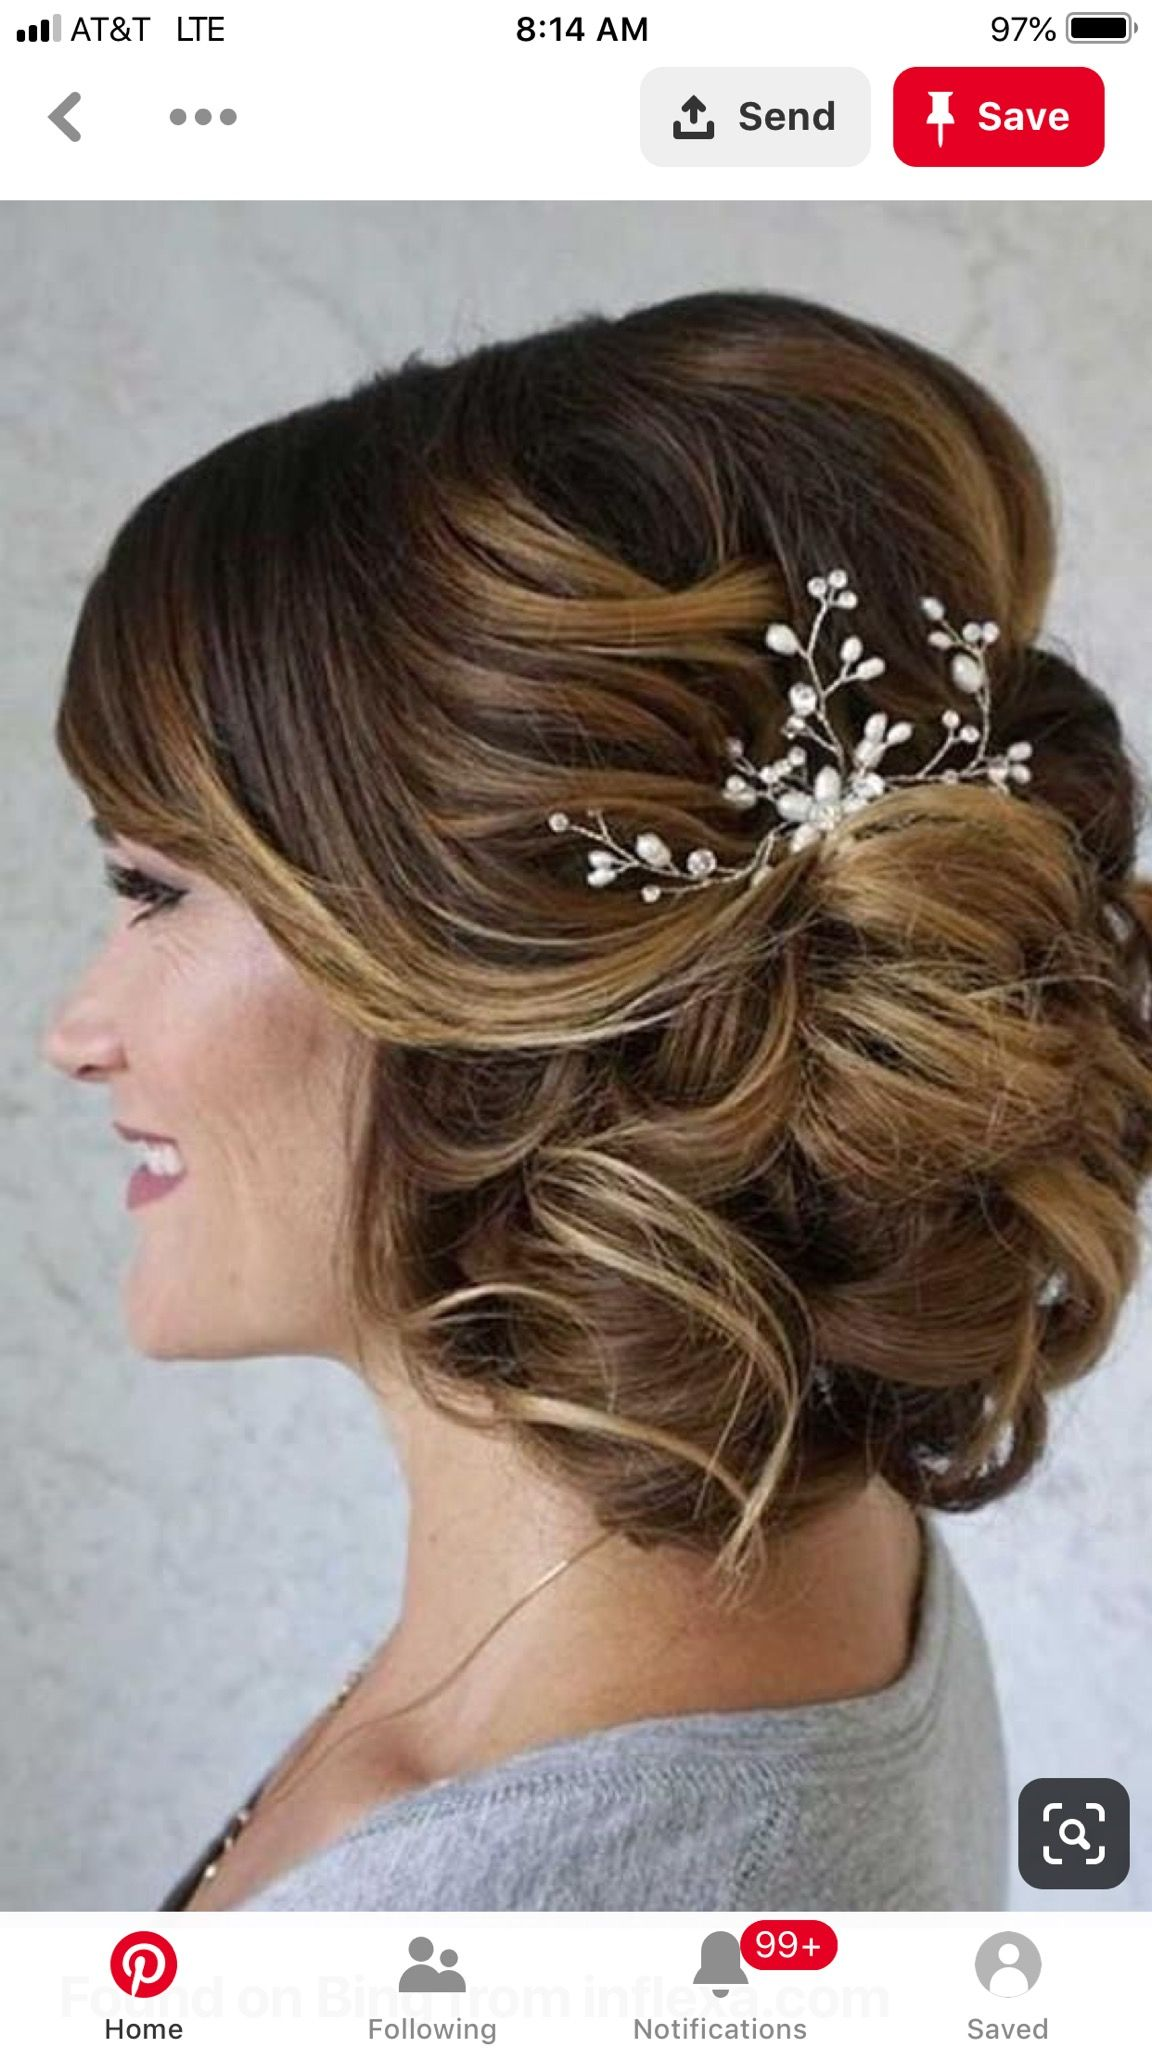 Pin By Alicia Hernon On Katie Wedding Mother Of The Bride Hair Wedding Hairstyles Updo Wedding Hairstyles For Medium Hair